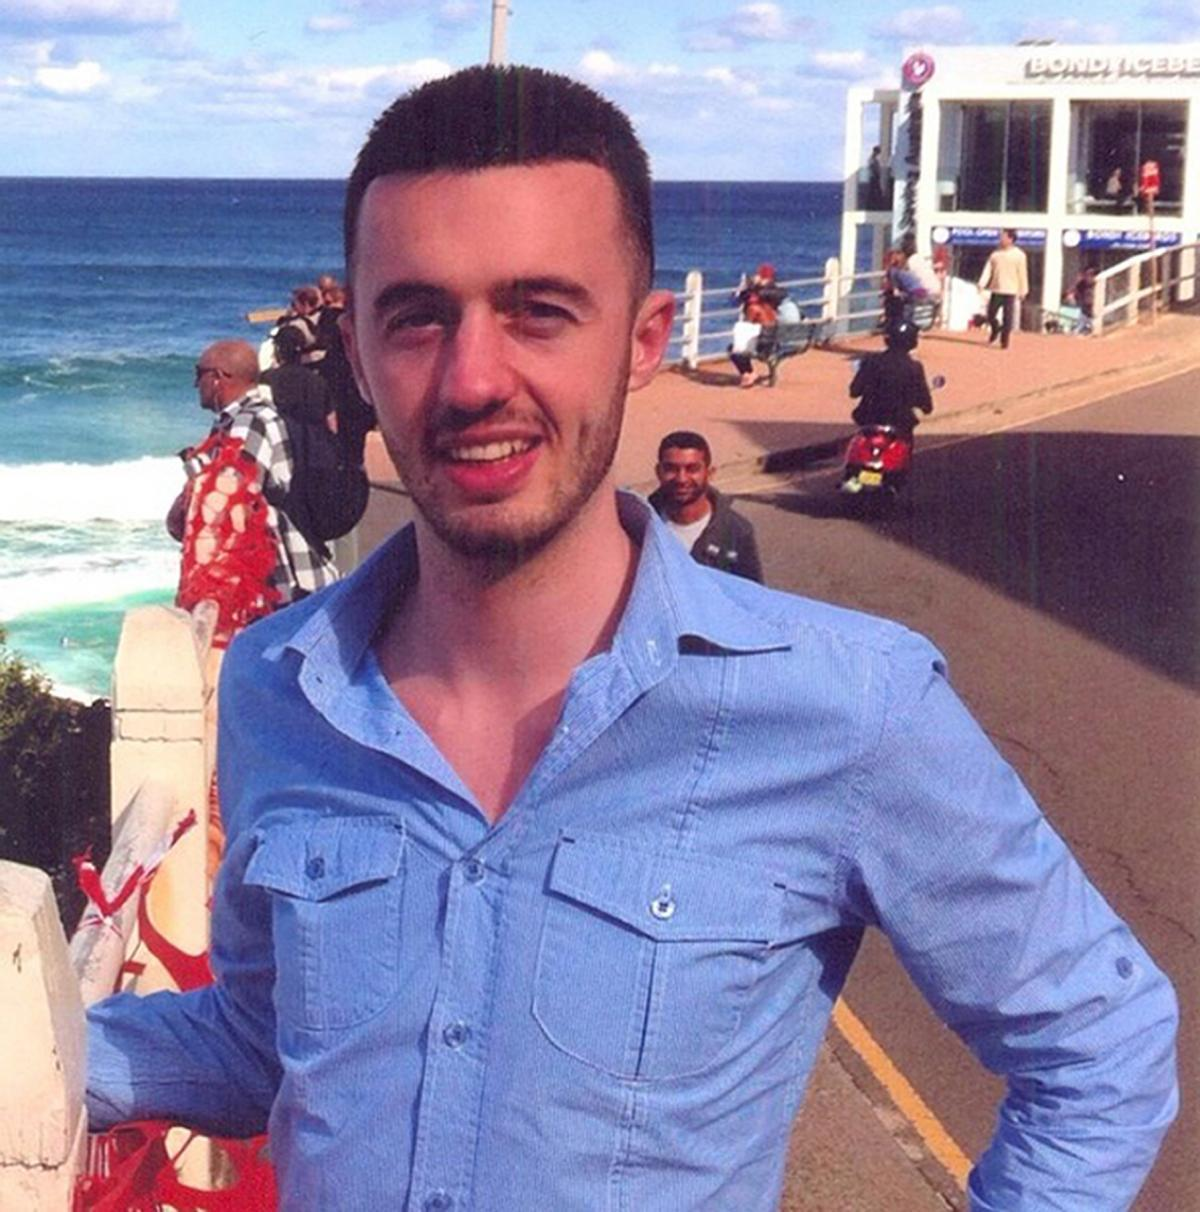 Craig Mallen was on holiday in Spain in 2012 when the tragedy occurred.